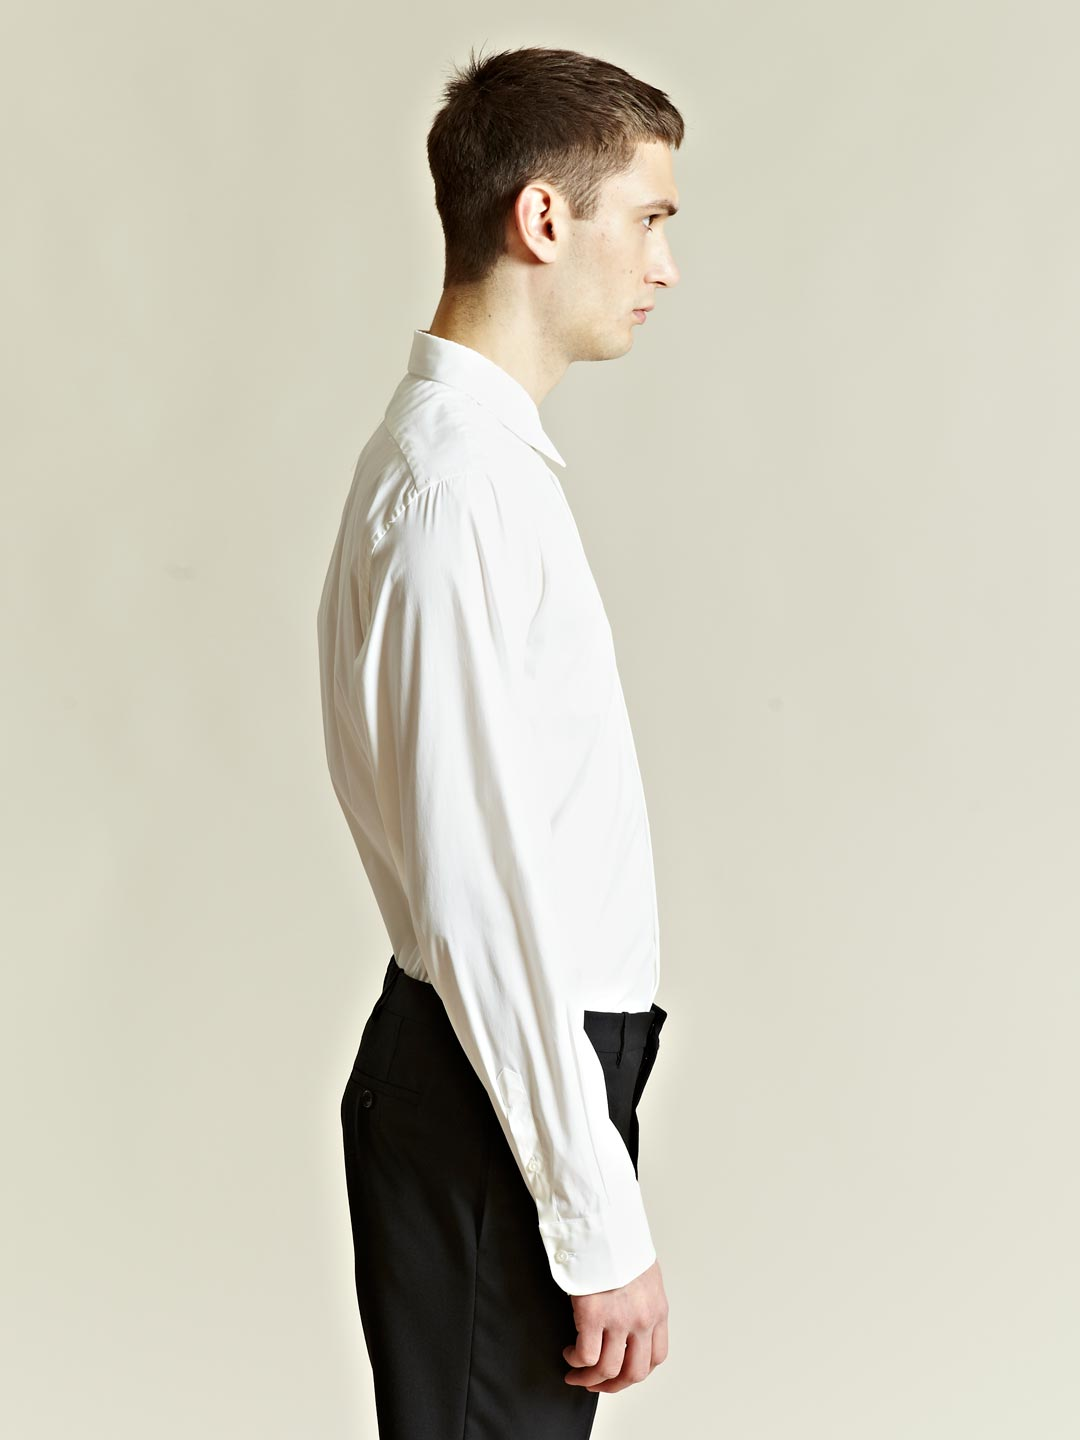 lyst jil sander mens lava shirt in white for men. Black Bedroom Furniture Sets. Home Design Ideas